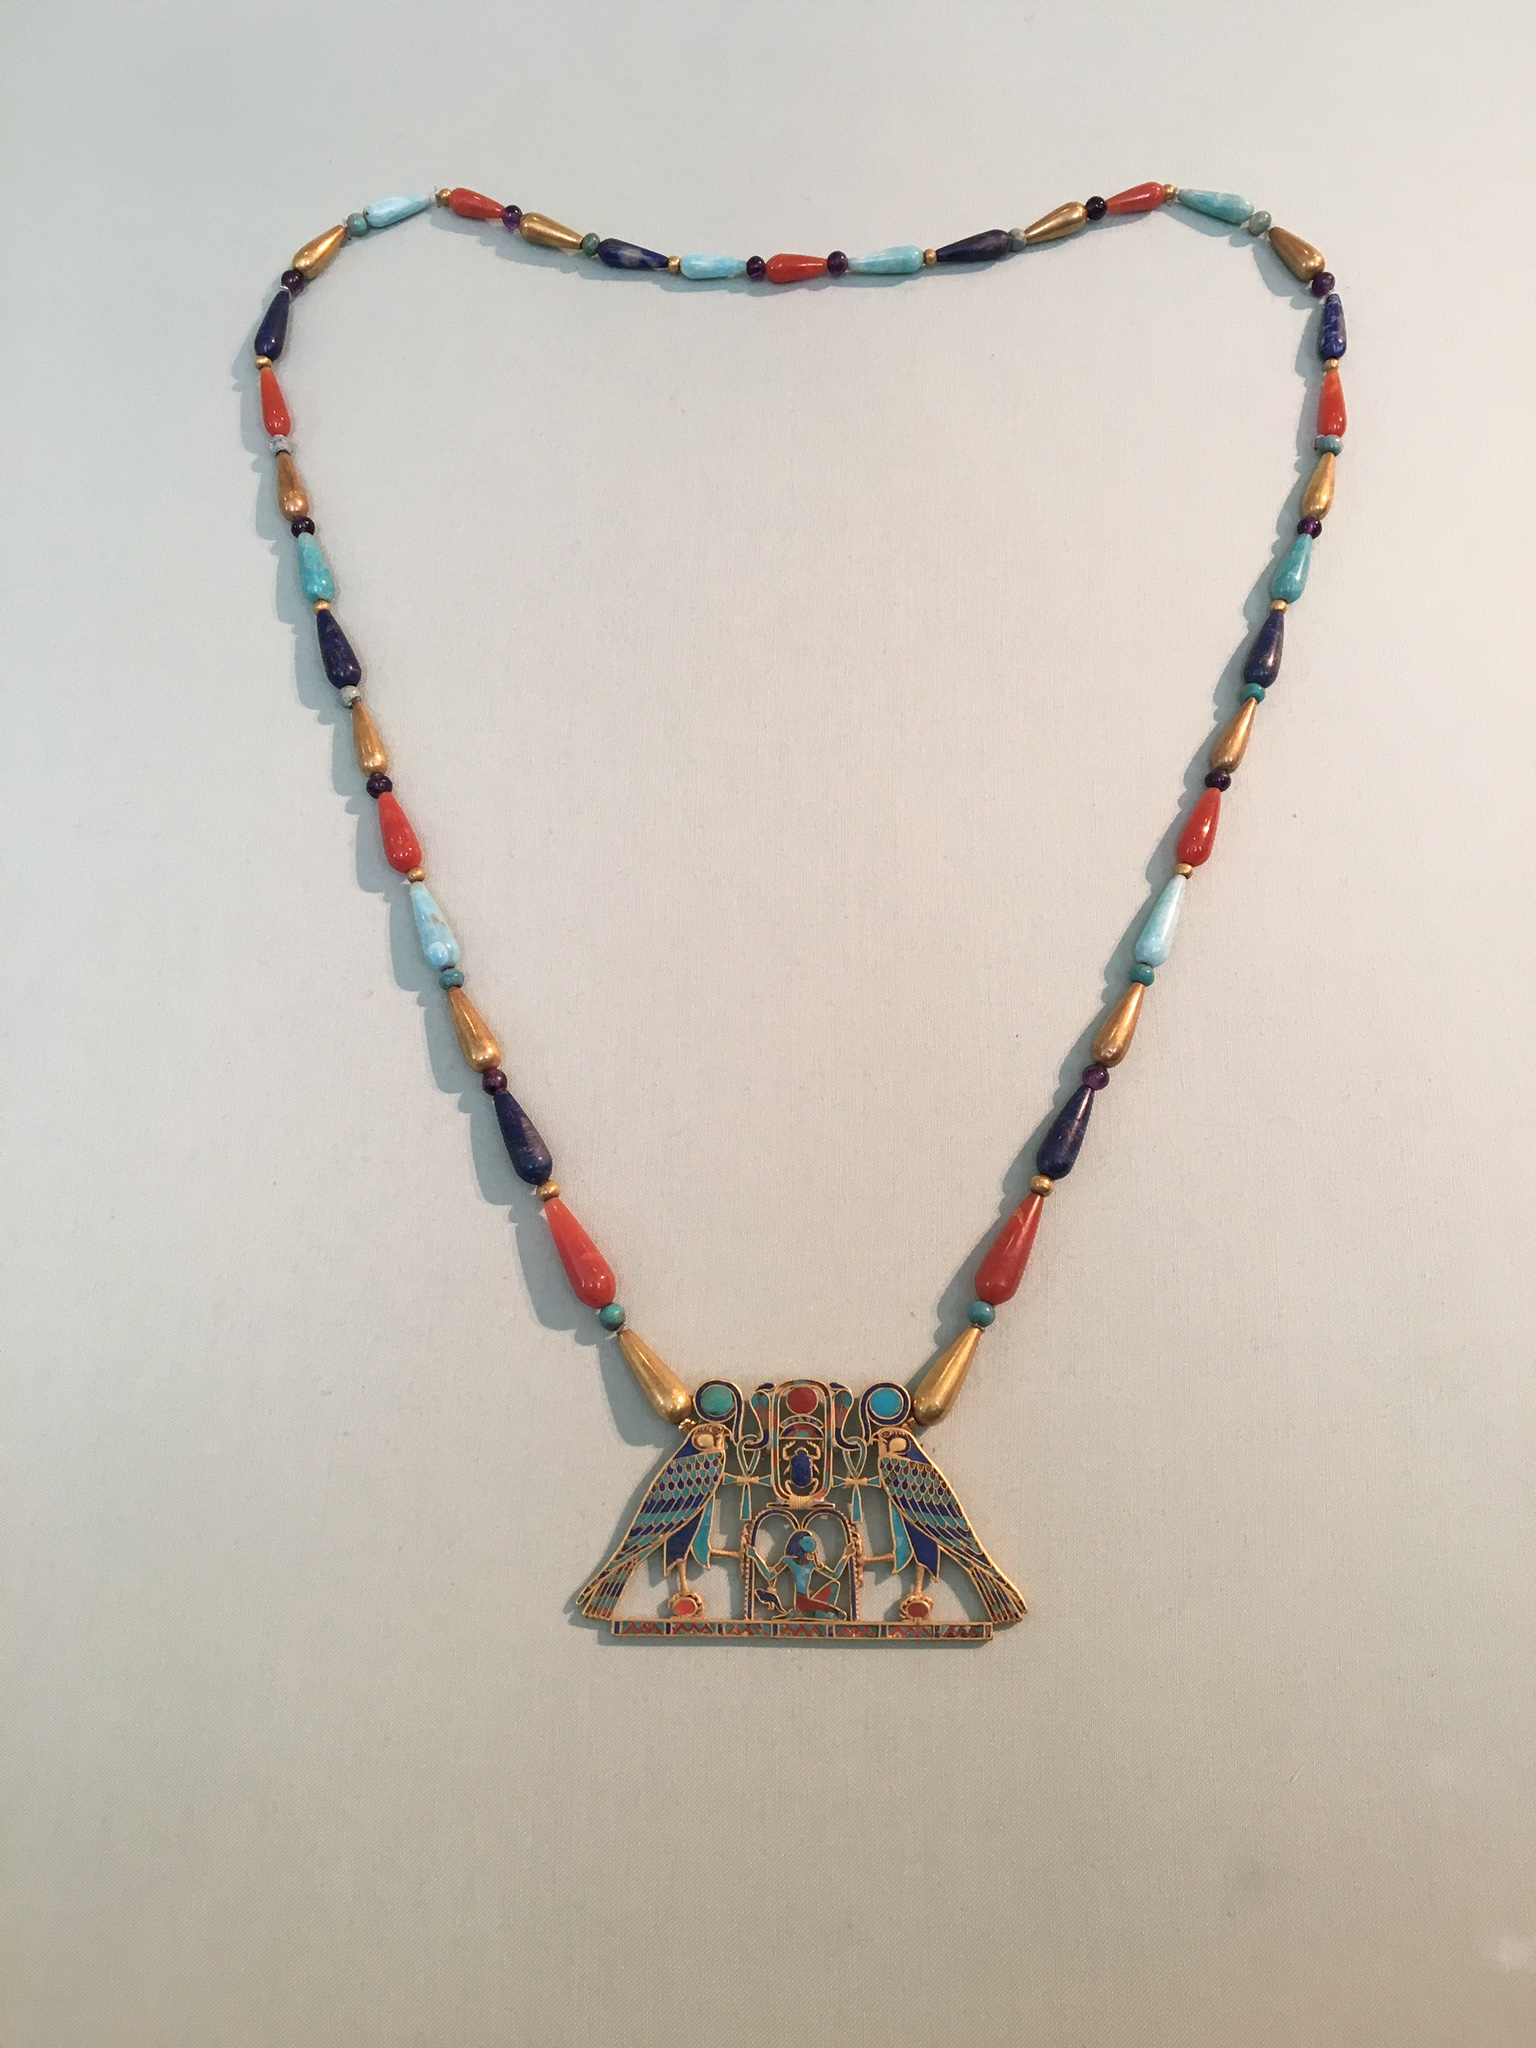 Pectoral and Necklace of Sithathoryunet ca. 1887-1813 B.C.E.